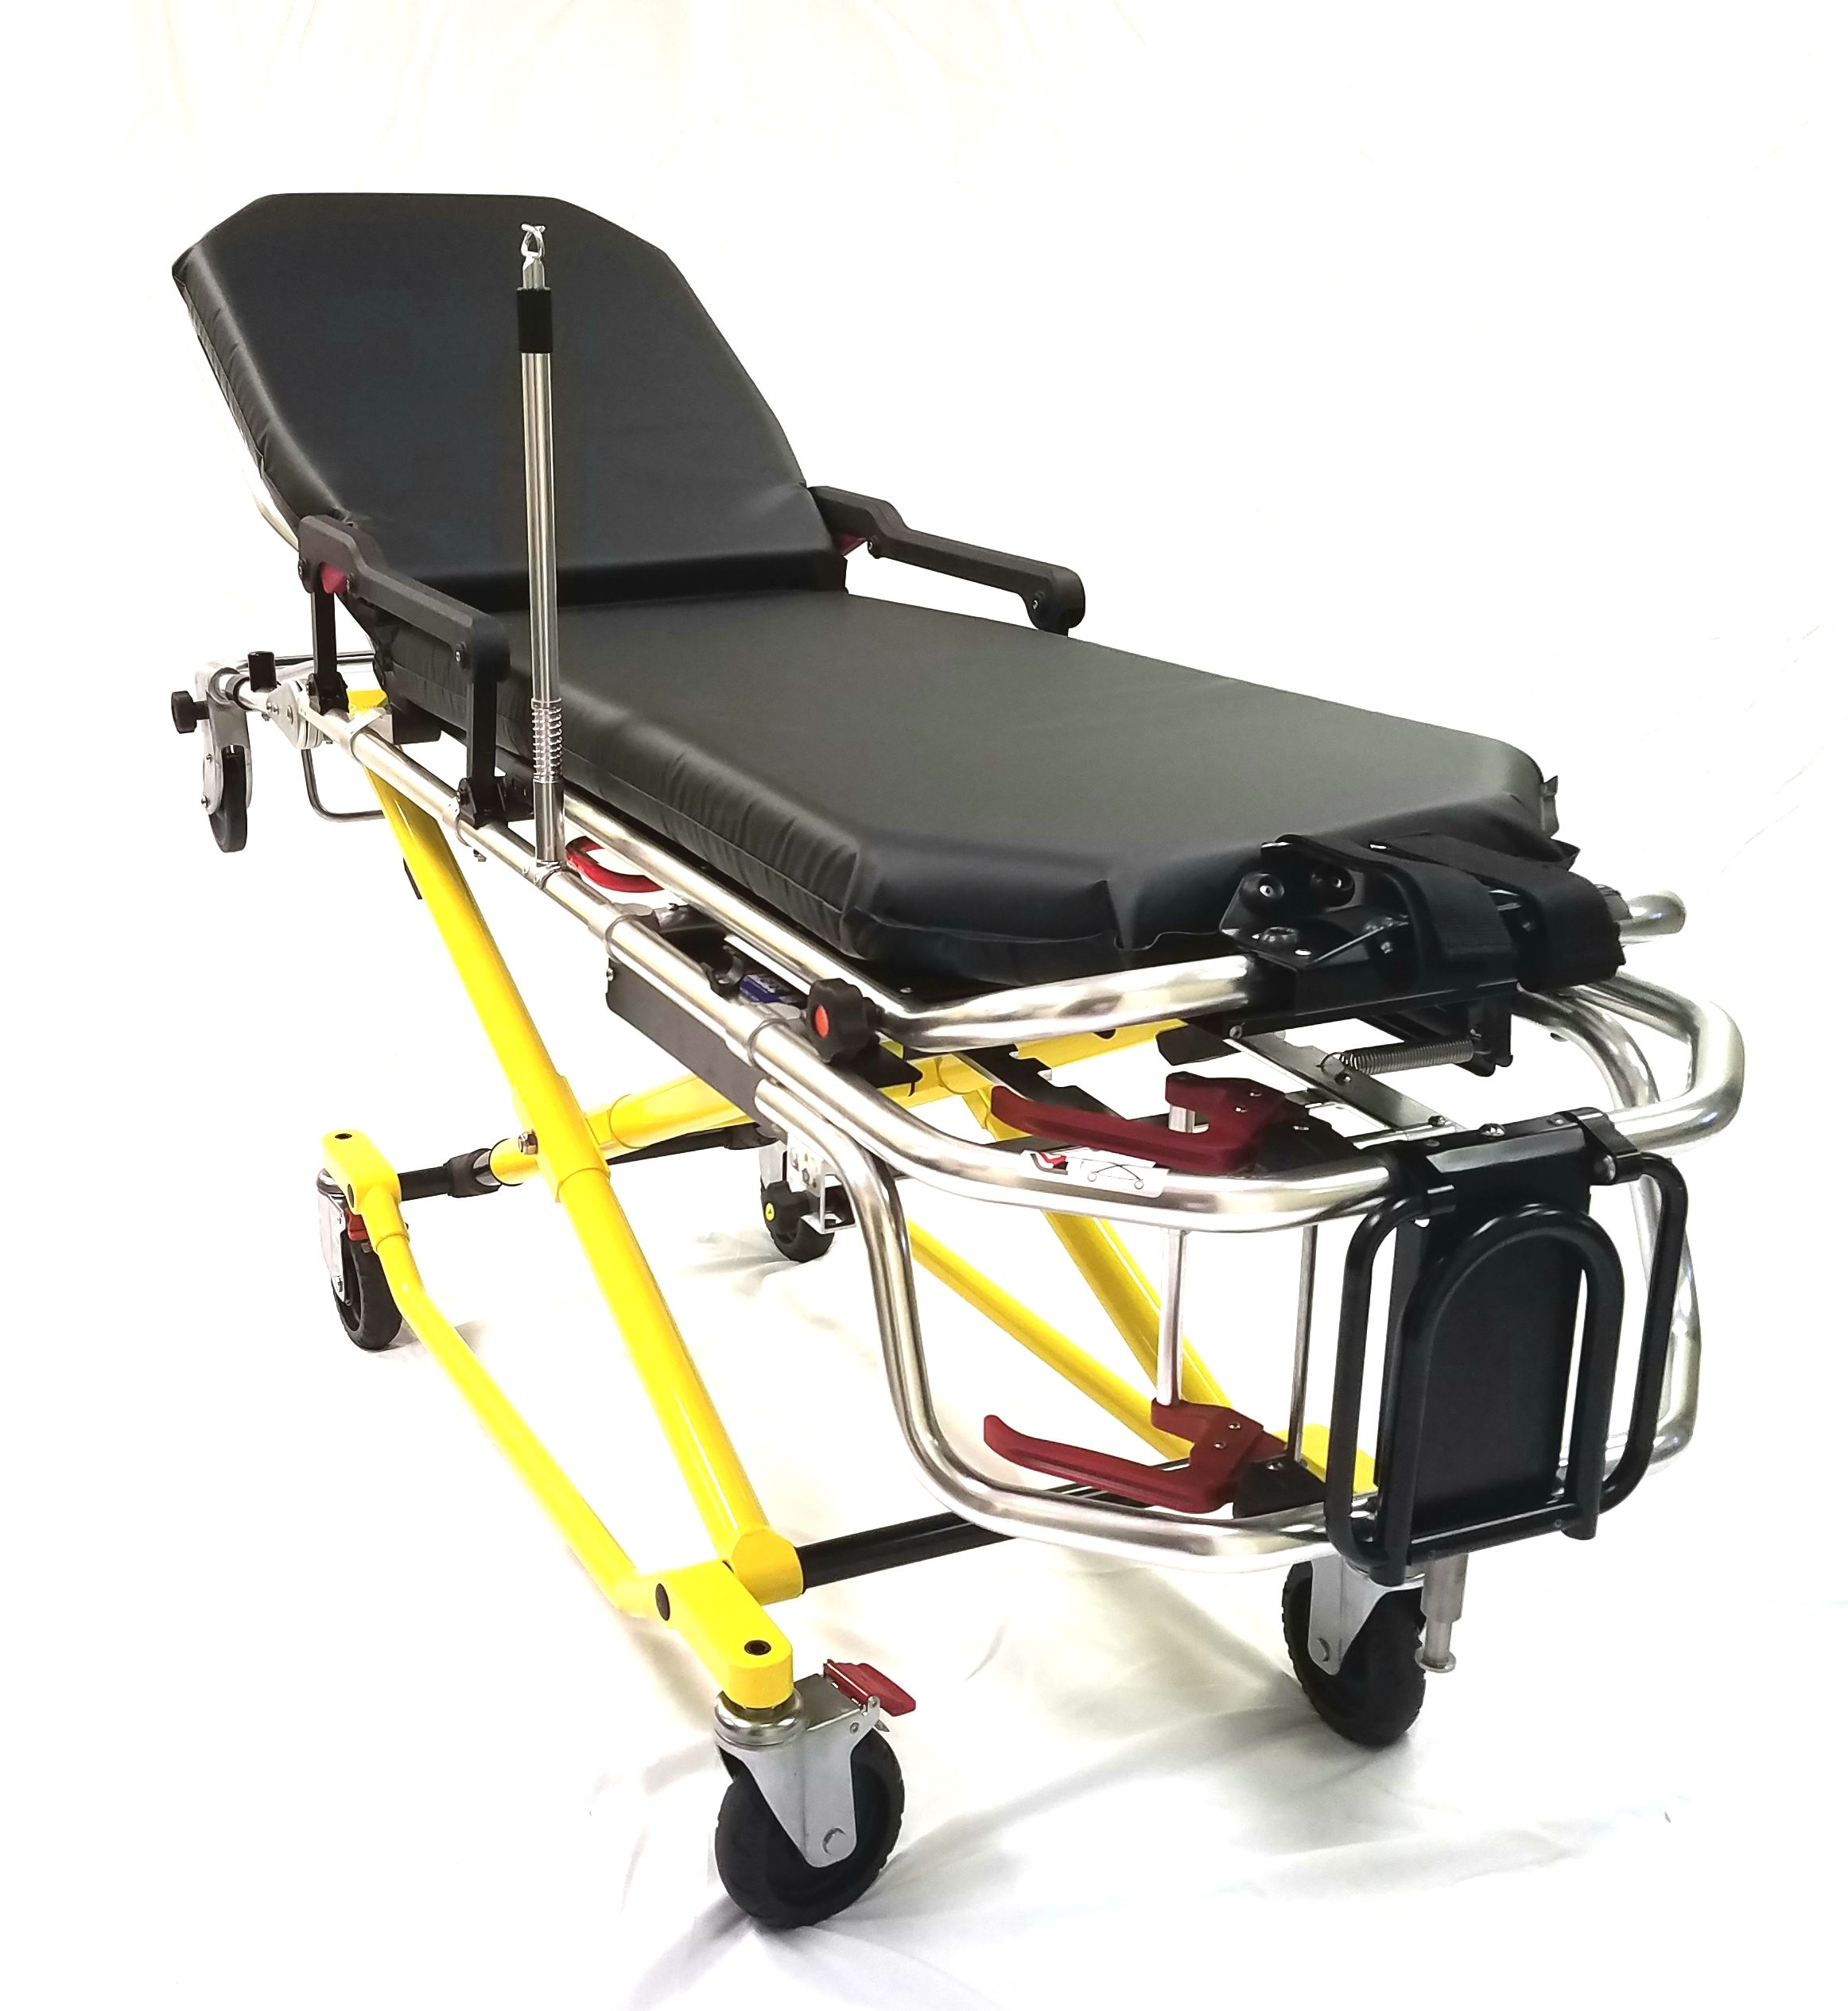 MS3C Commercial Pro-X Frame EMS Stretcher